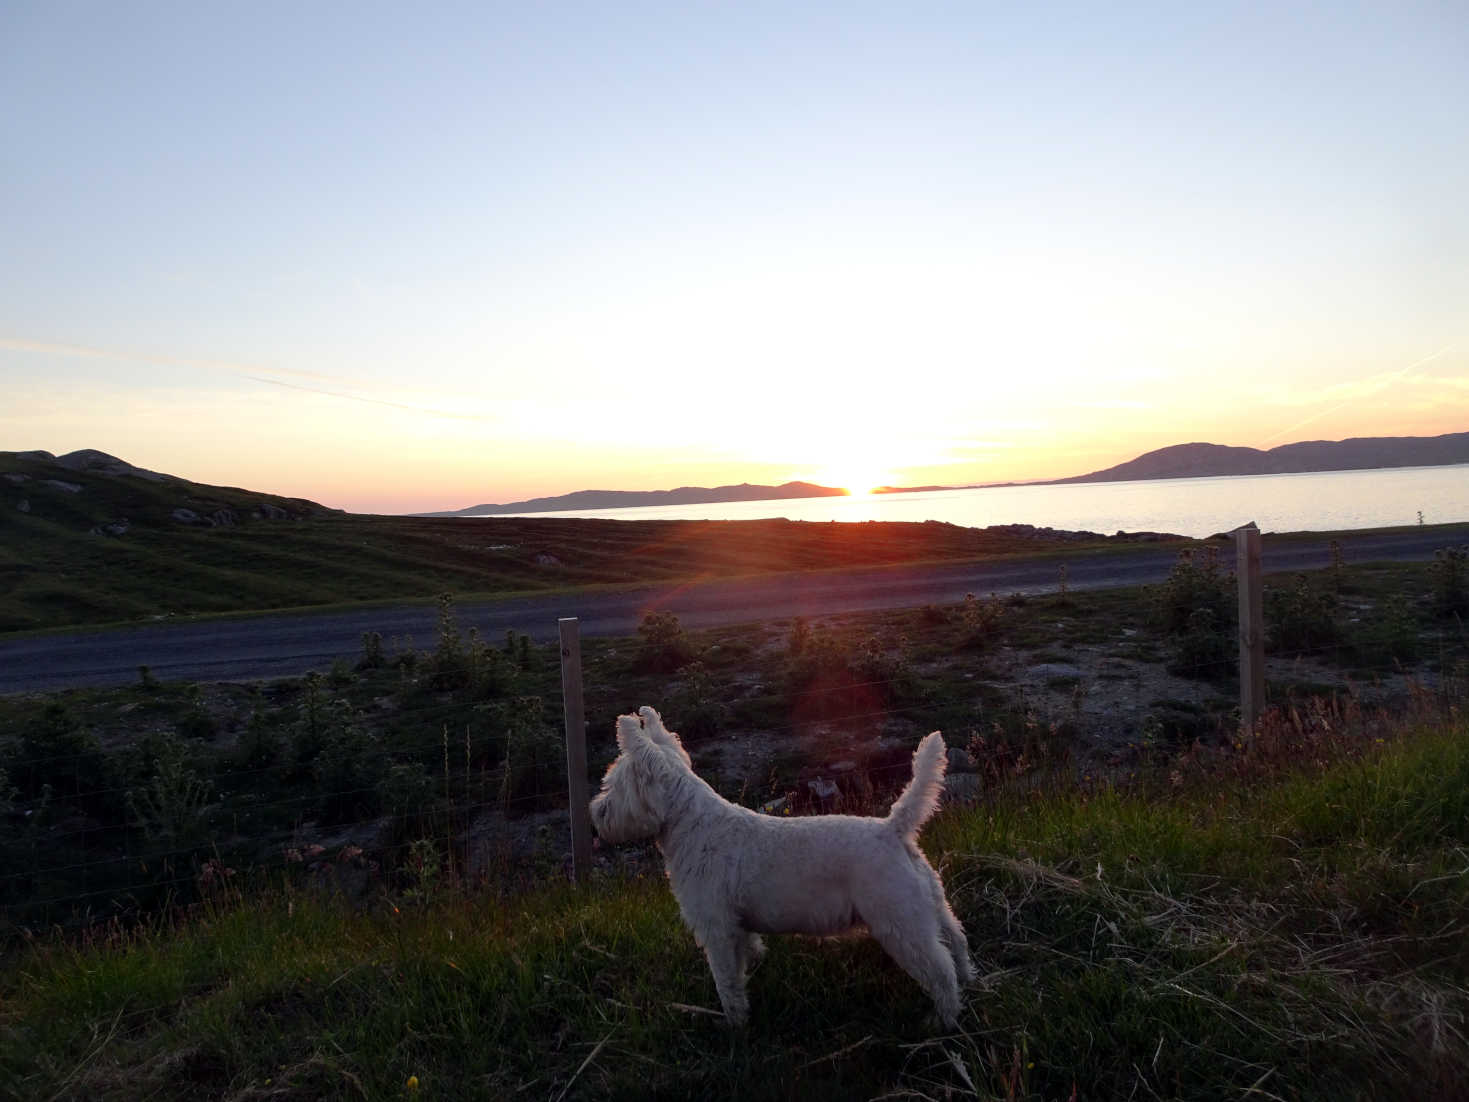 poppy the westie looks at sheep at sunset